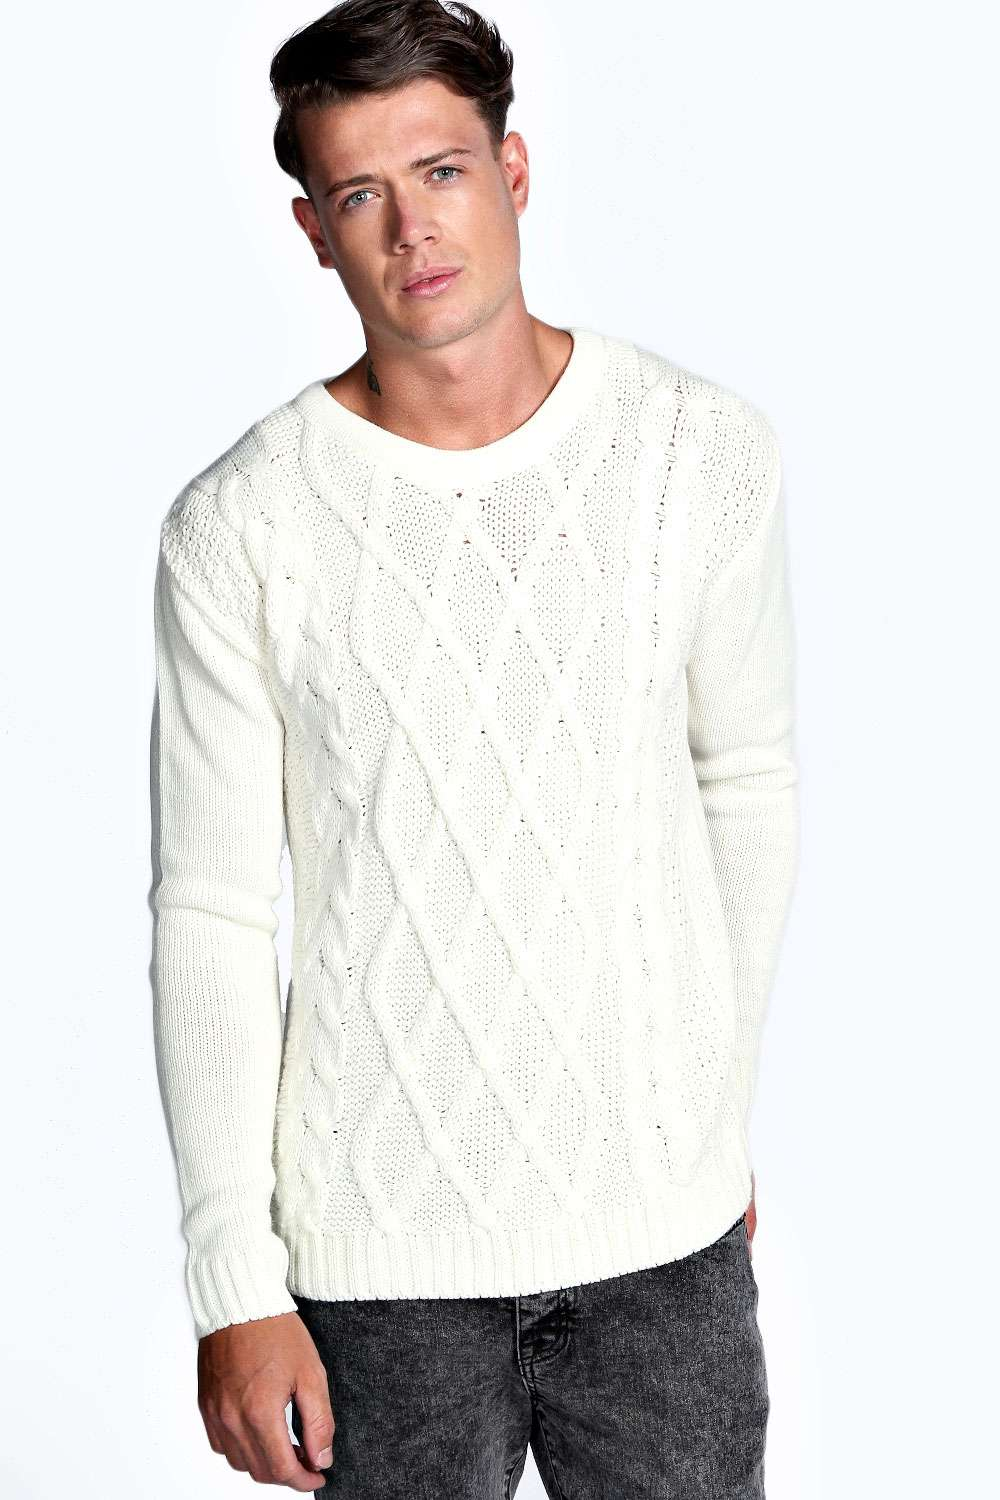 Boohoo Mens Cable Knit Long Sleeve Crew Neck Top Pullover Jumper